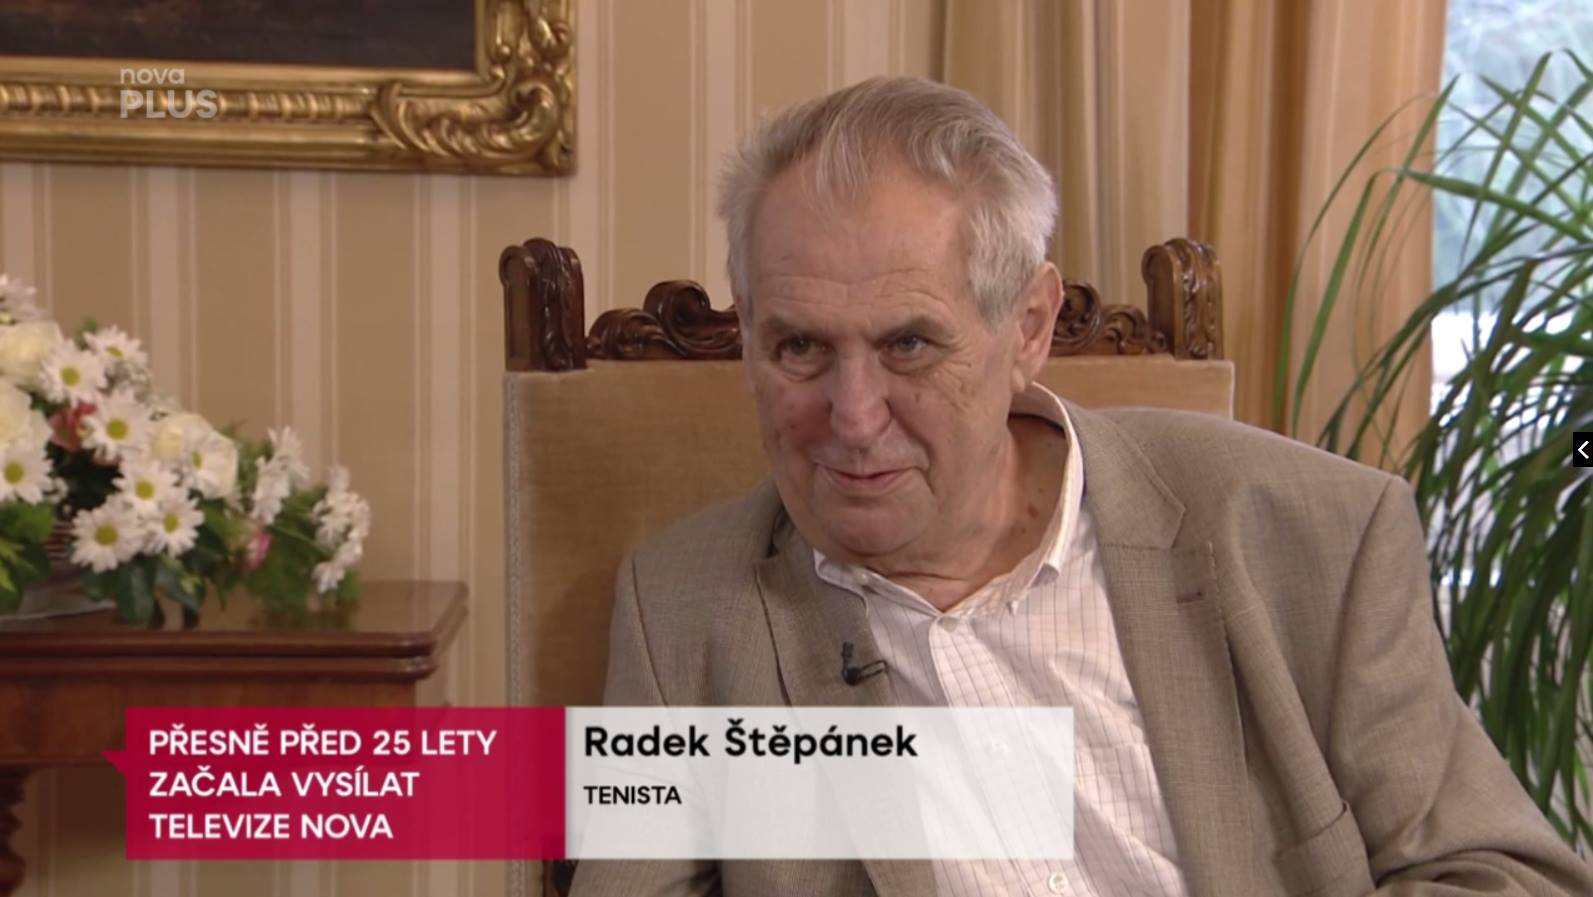 President Miloš Zeman misidentified as tennis player Radek Štěpánek in TV Nova caption